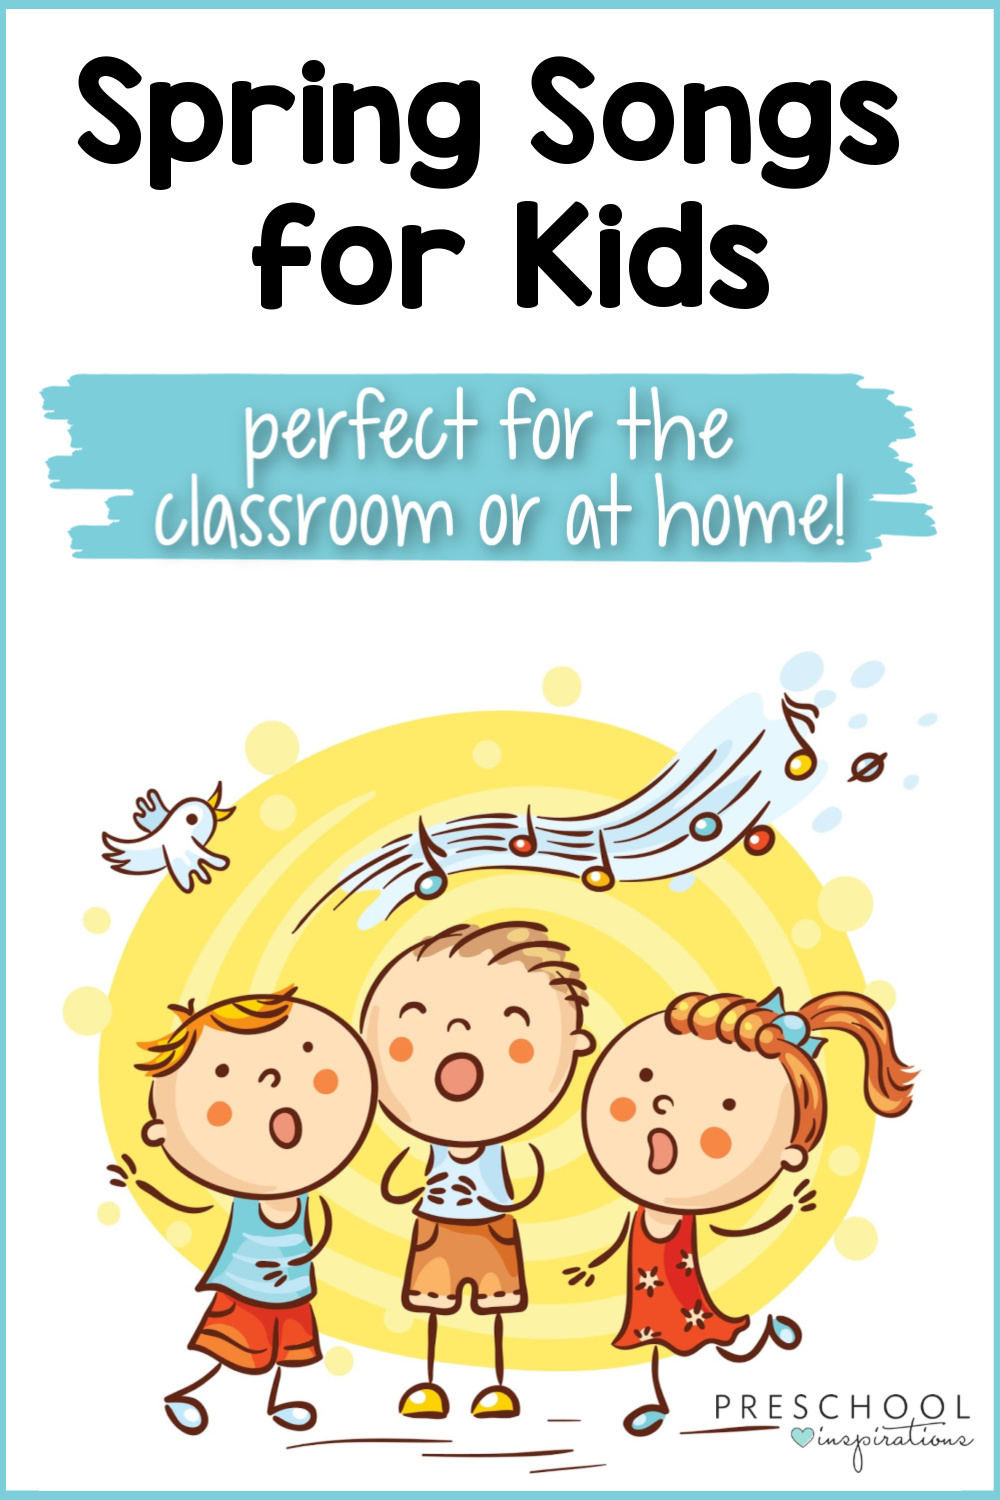 Great songs for kids with a springtime theme! Dance songs, fingerplays, chants and more that are all about rainbows, butterflies, and all things spring! You kids will love them, both at school and at home.